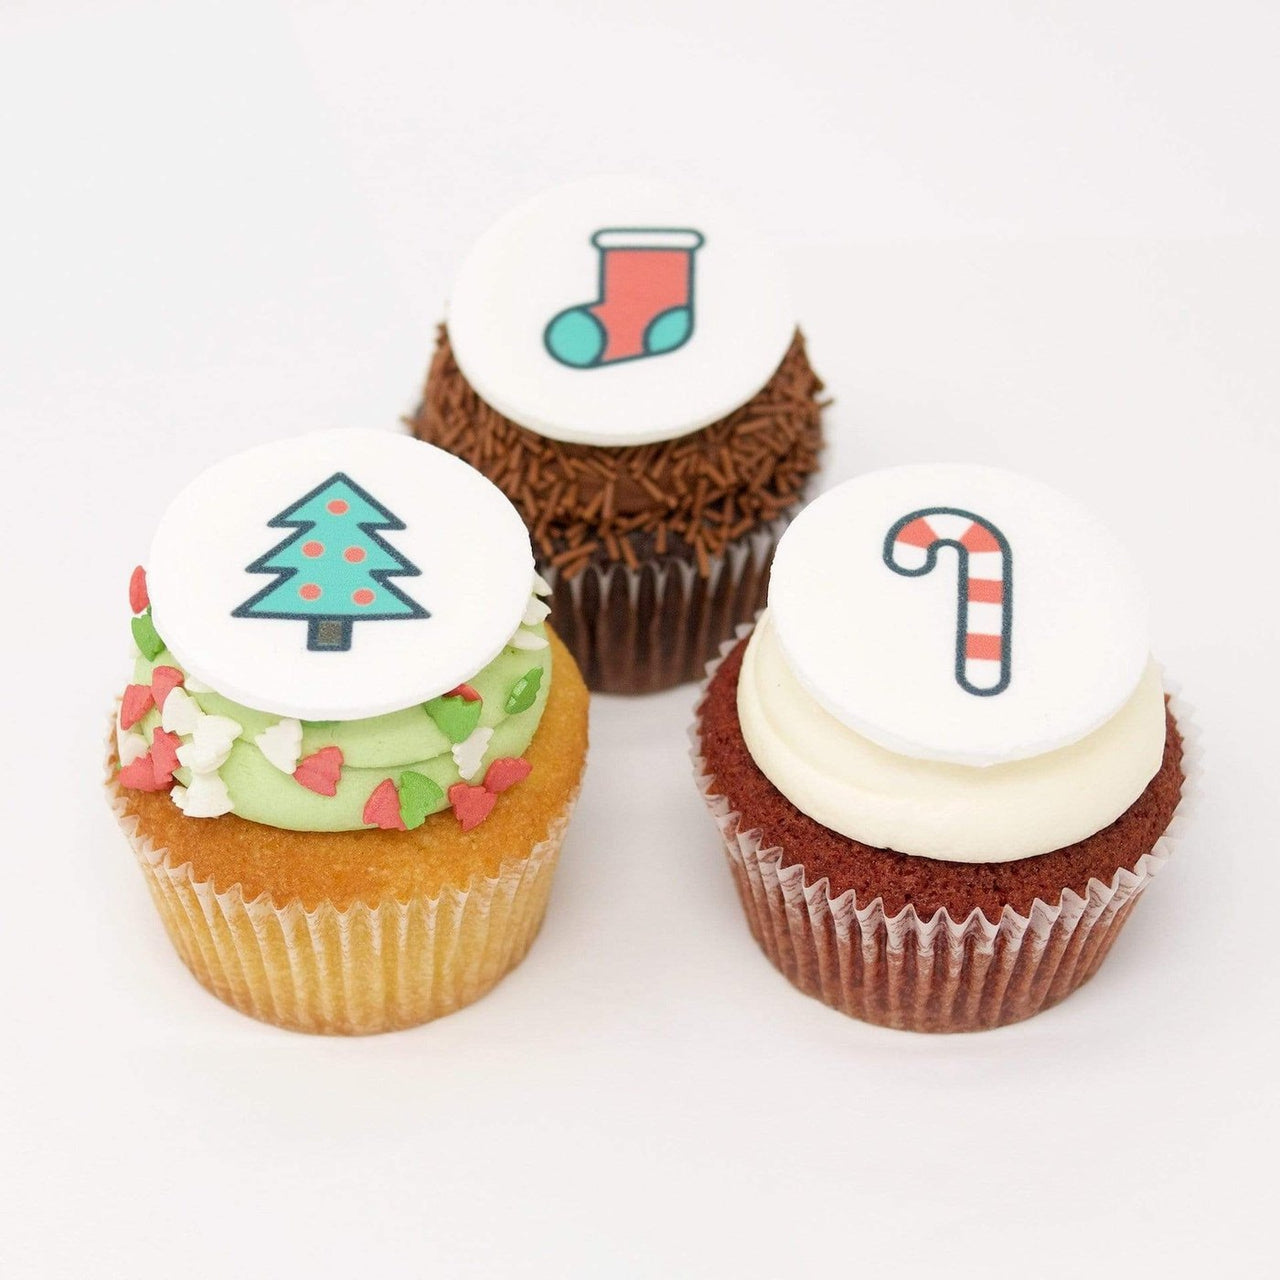 Christmas Cupcakes with Logos by Crumbs & Doilies